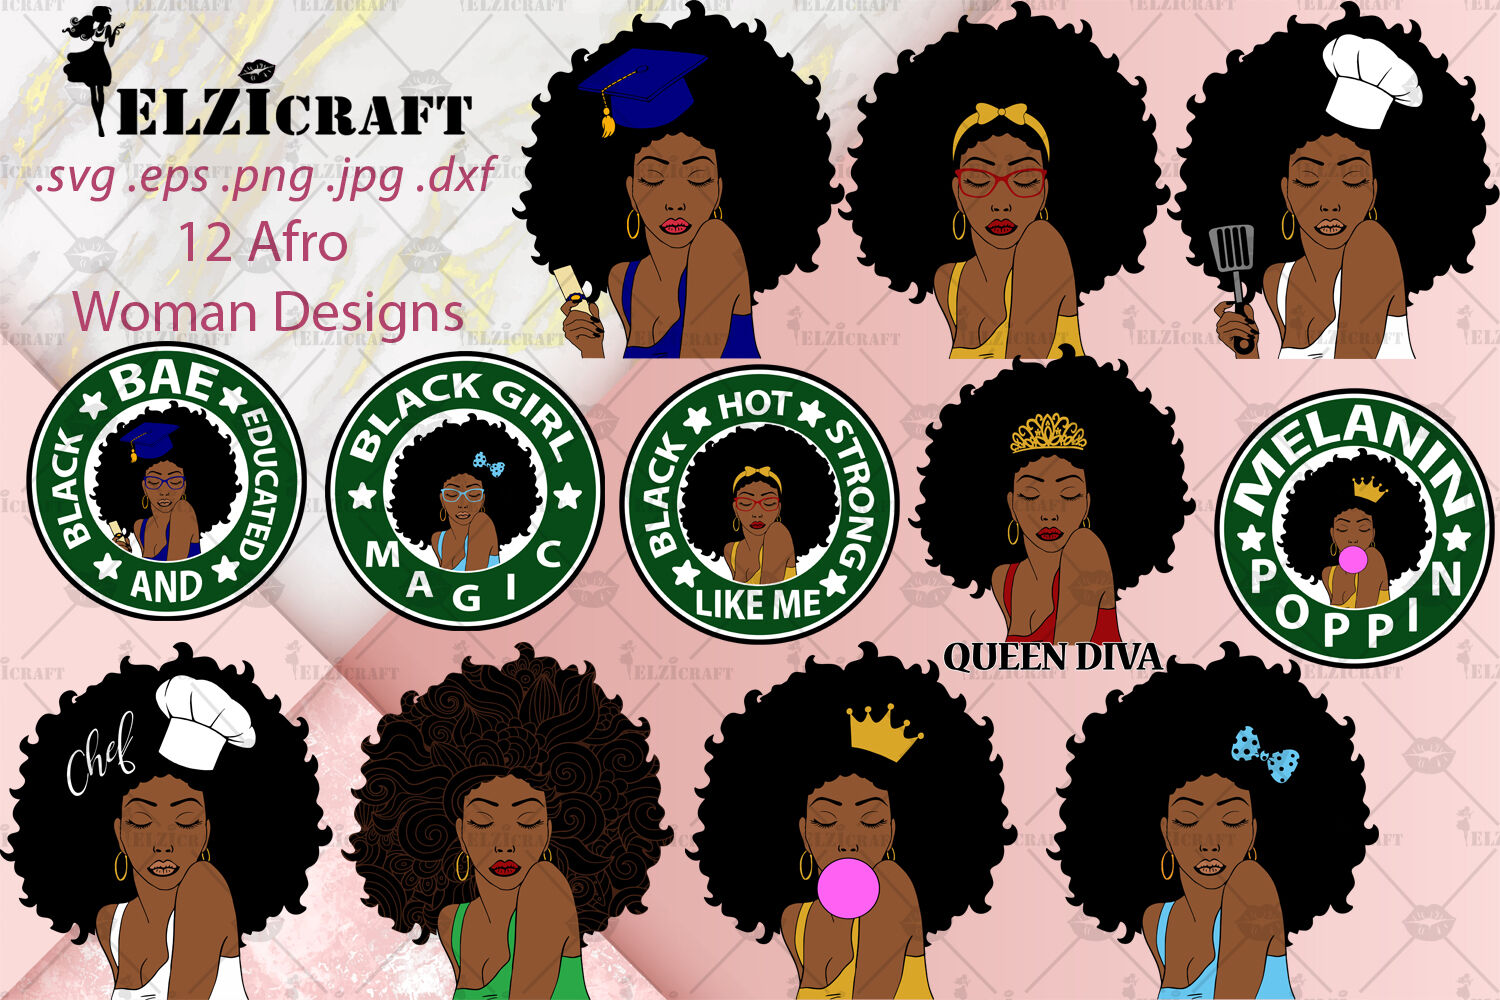 12 Afro Woman Designs Bundle Svg Cut Files By Elzicraft